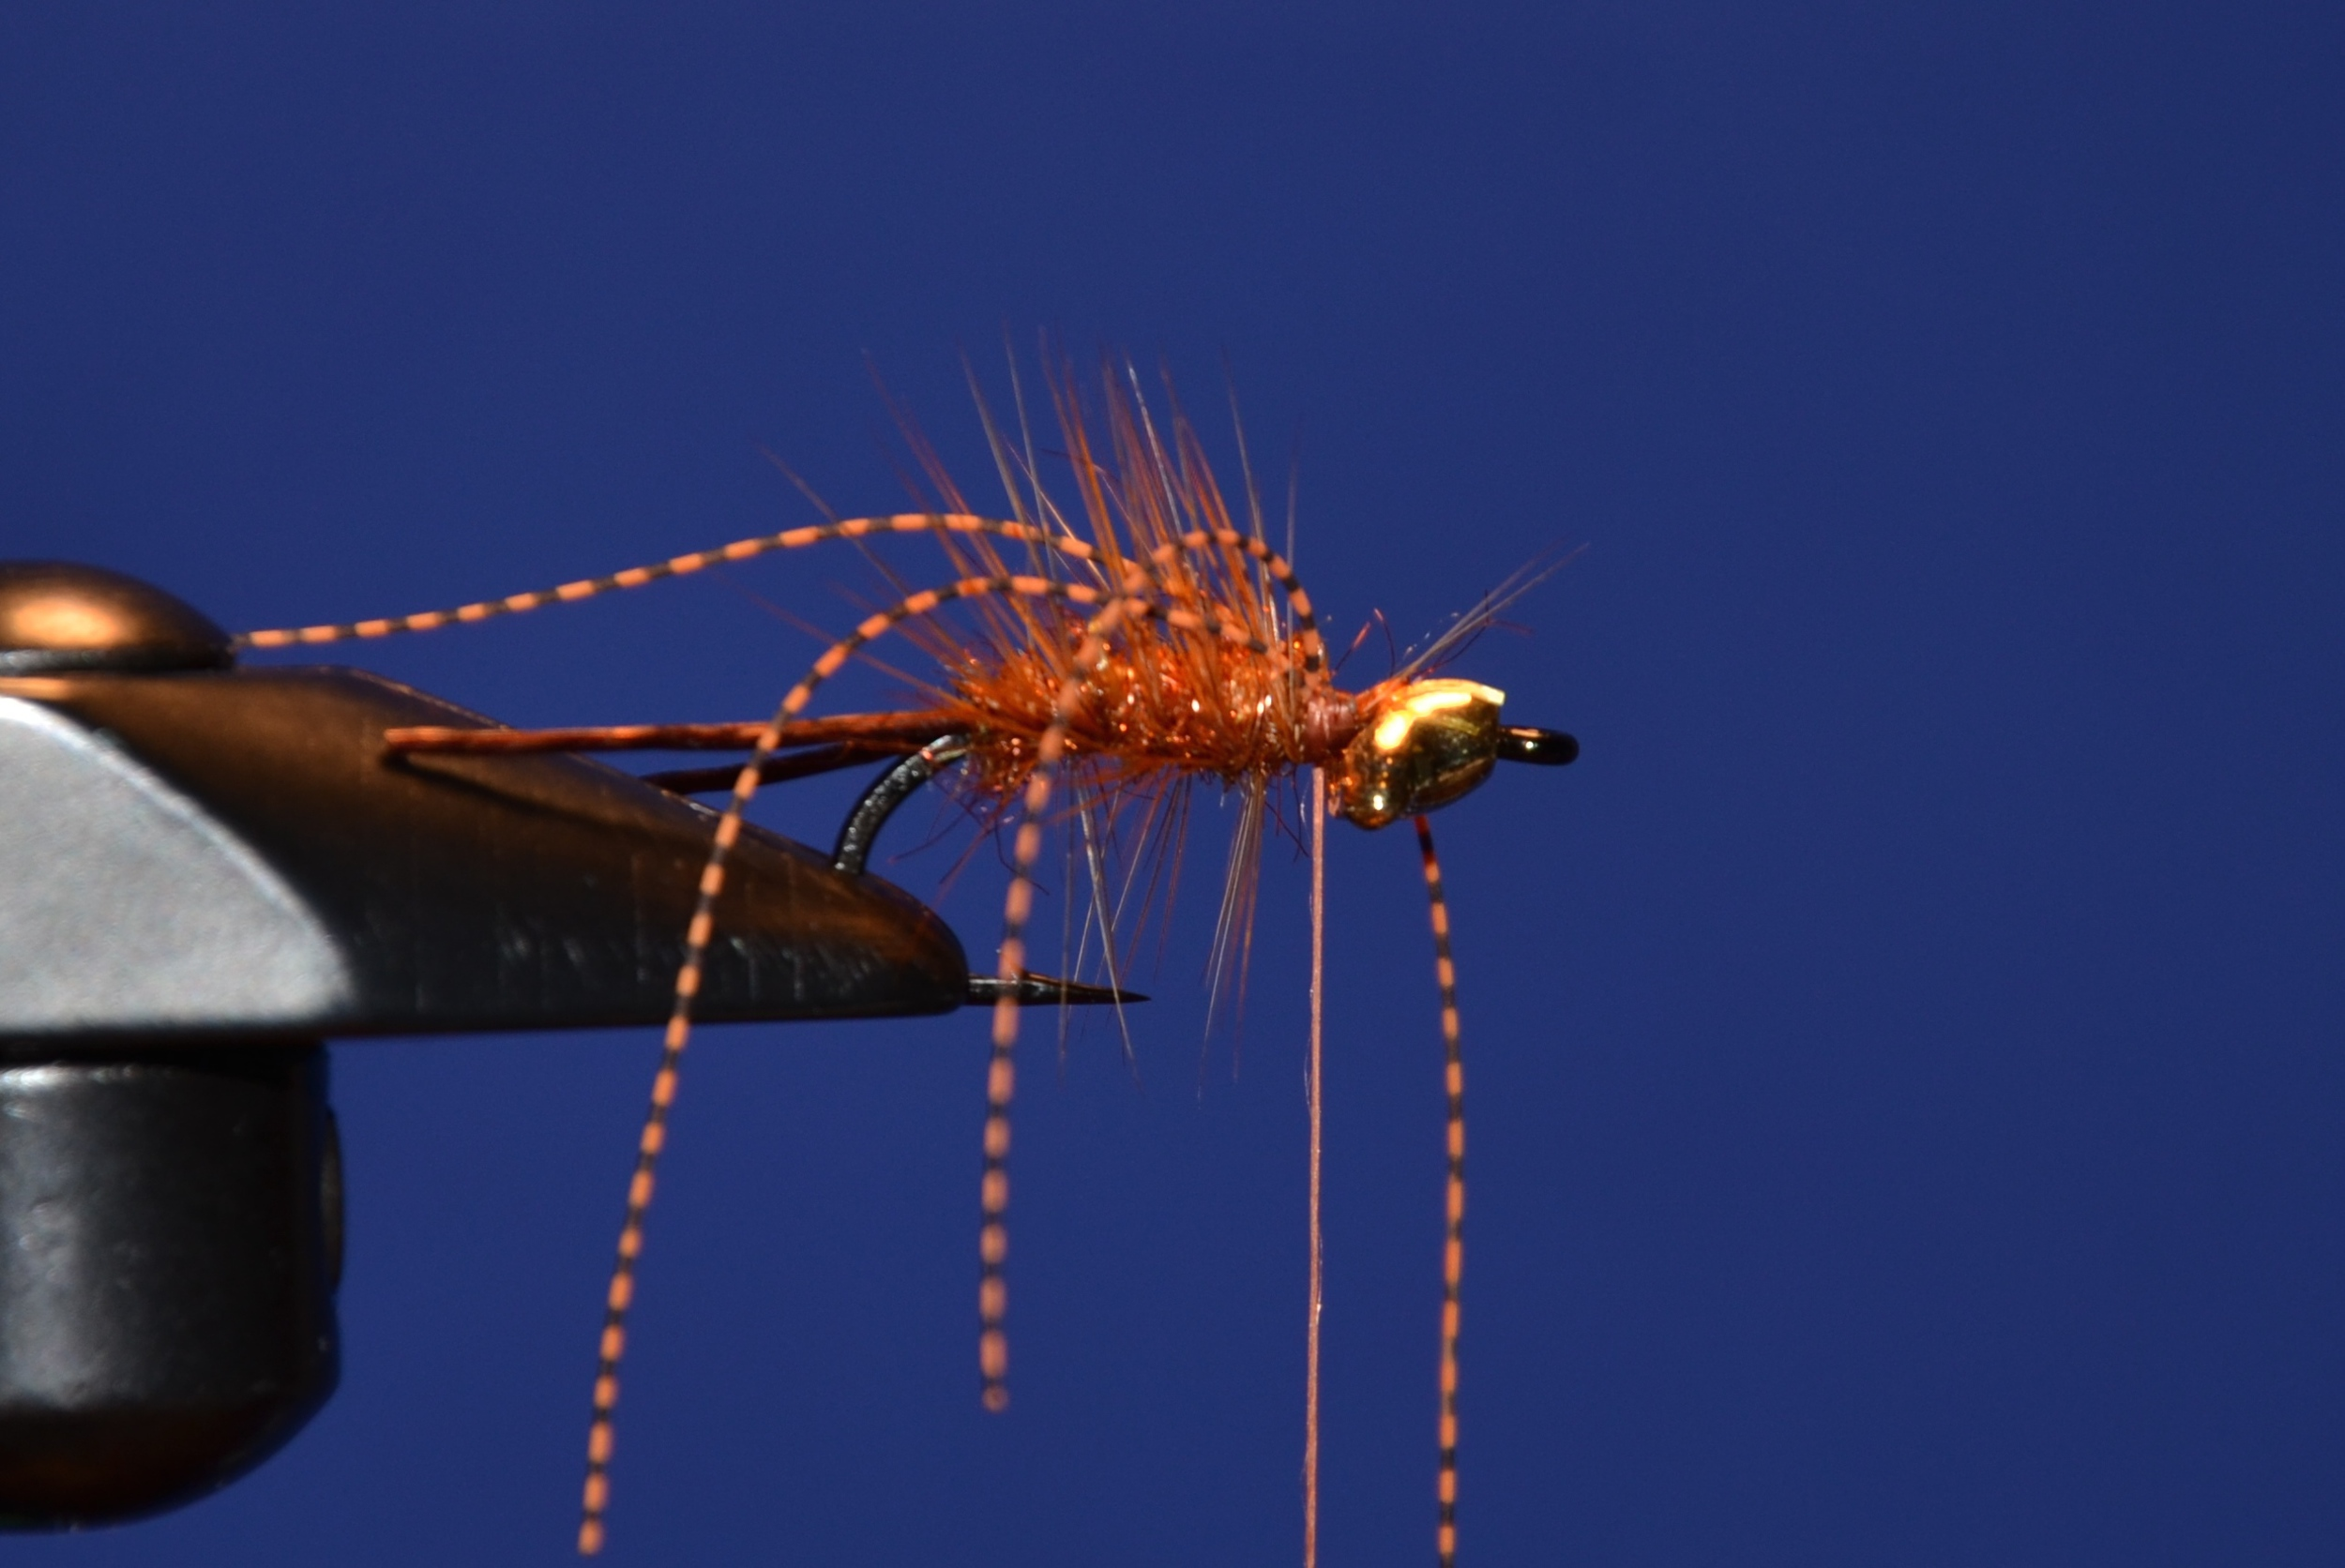 Attach centipede legs to the fly, one on each side and fold over to give you 2 on each side.